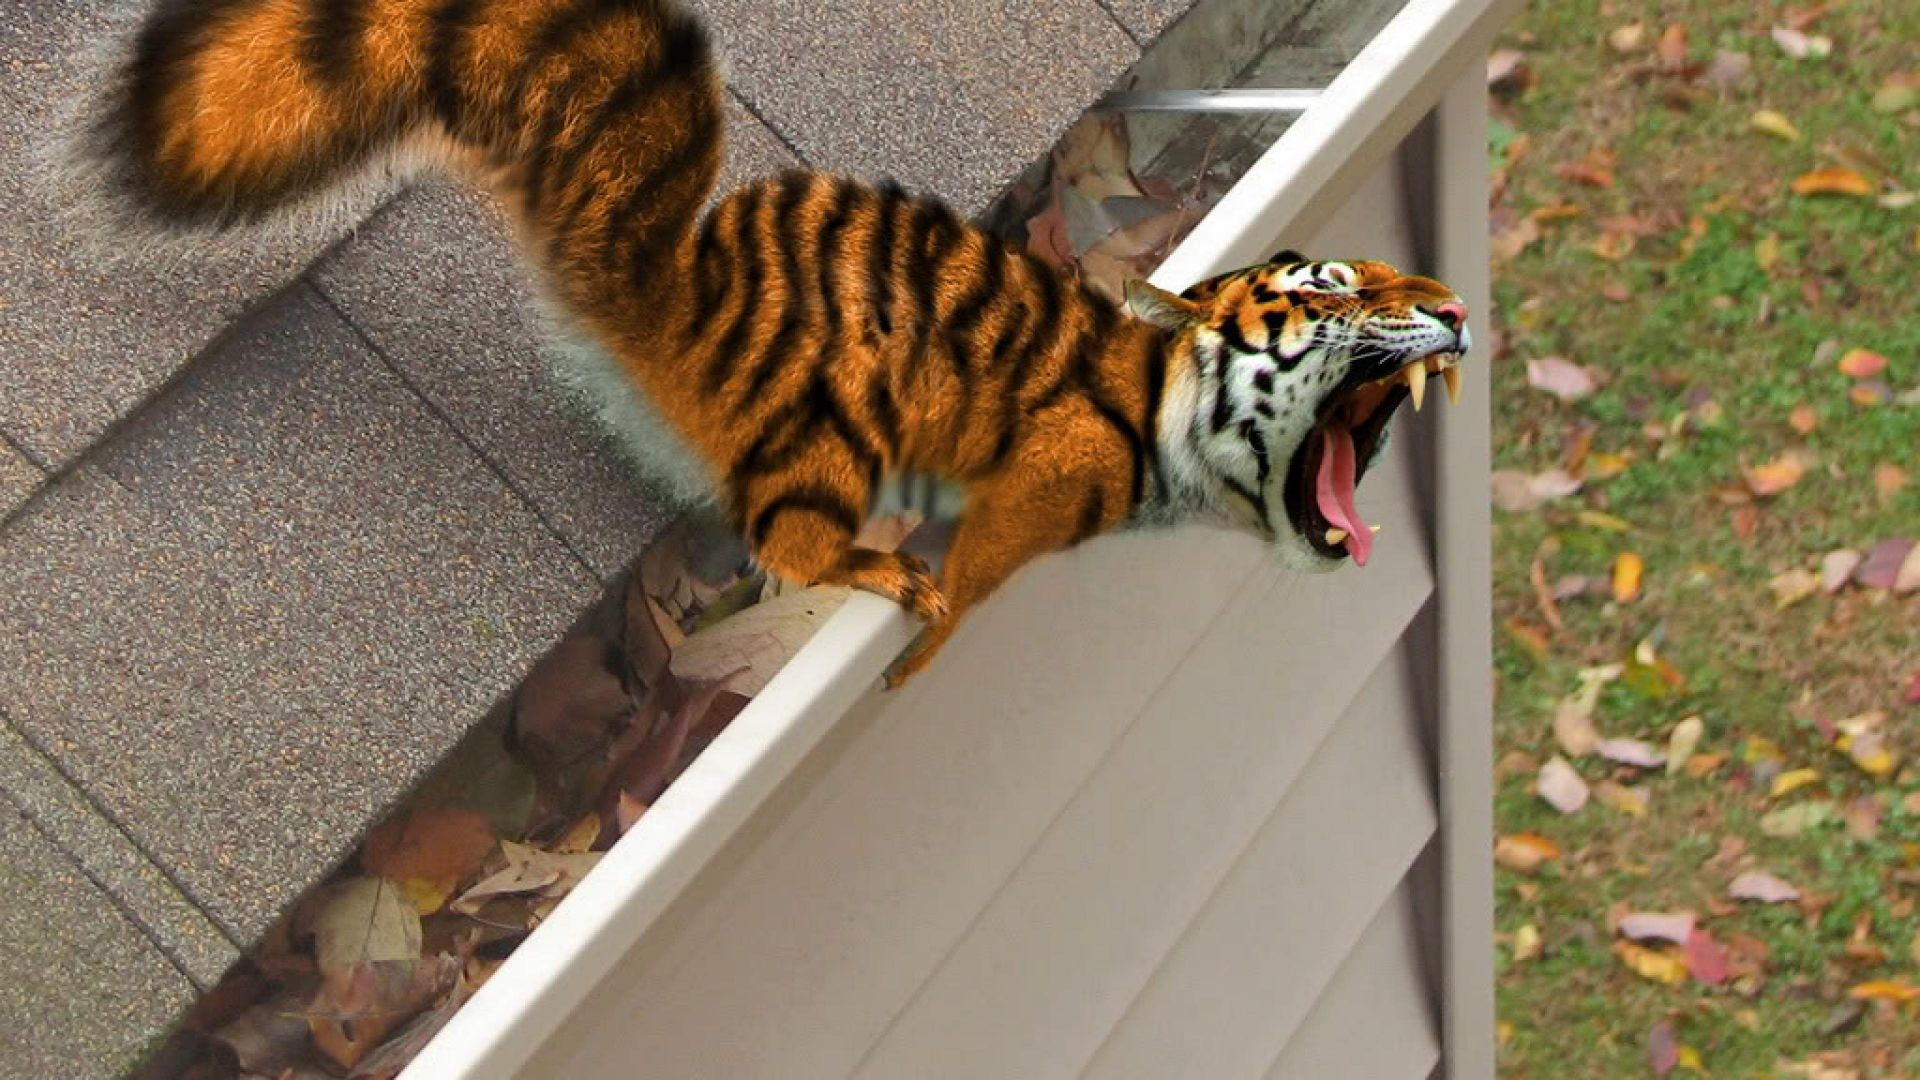 1920x1080 Squiger Tiger fangs funny Animal Wallpaper | HD Funny Wallpaper Free  Download ...